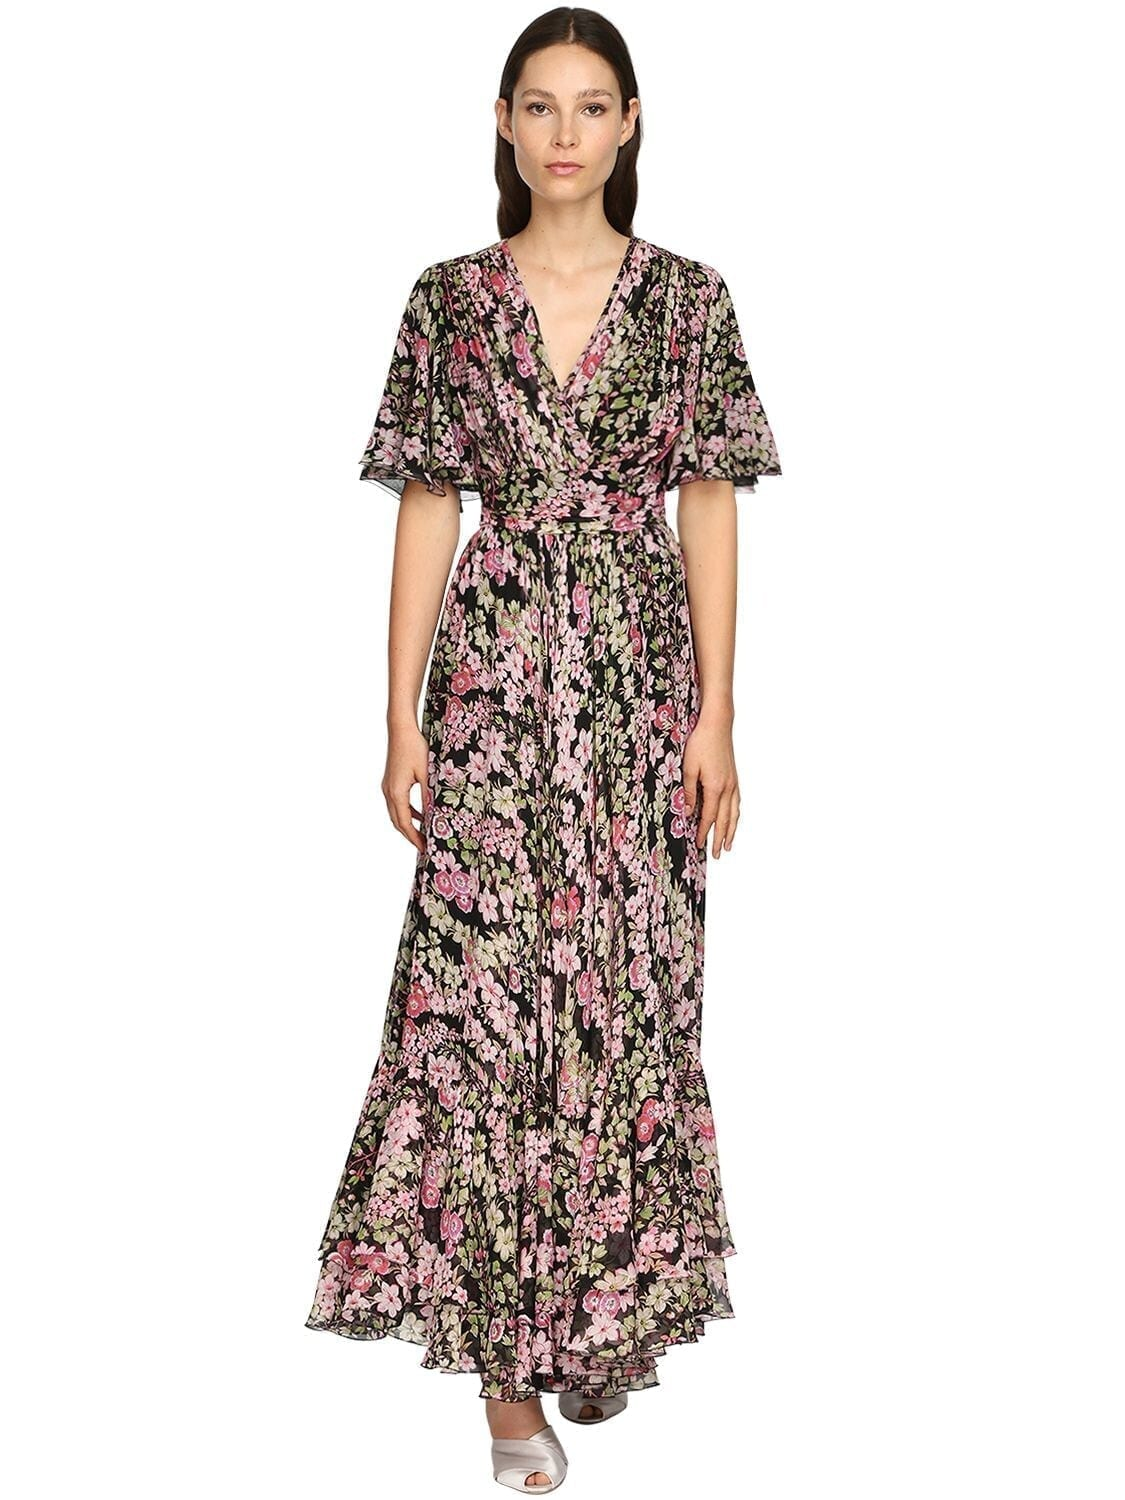 GIAMBATTISTA VALLI Floral Print Silk Georgette Long Dress